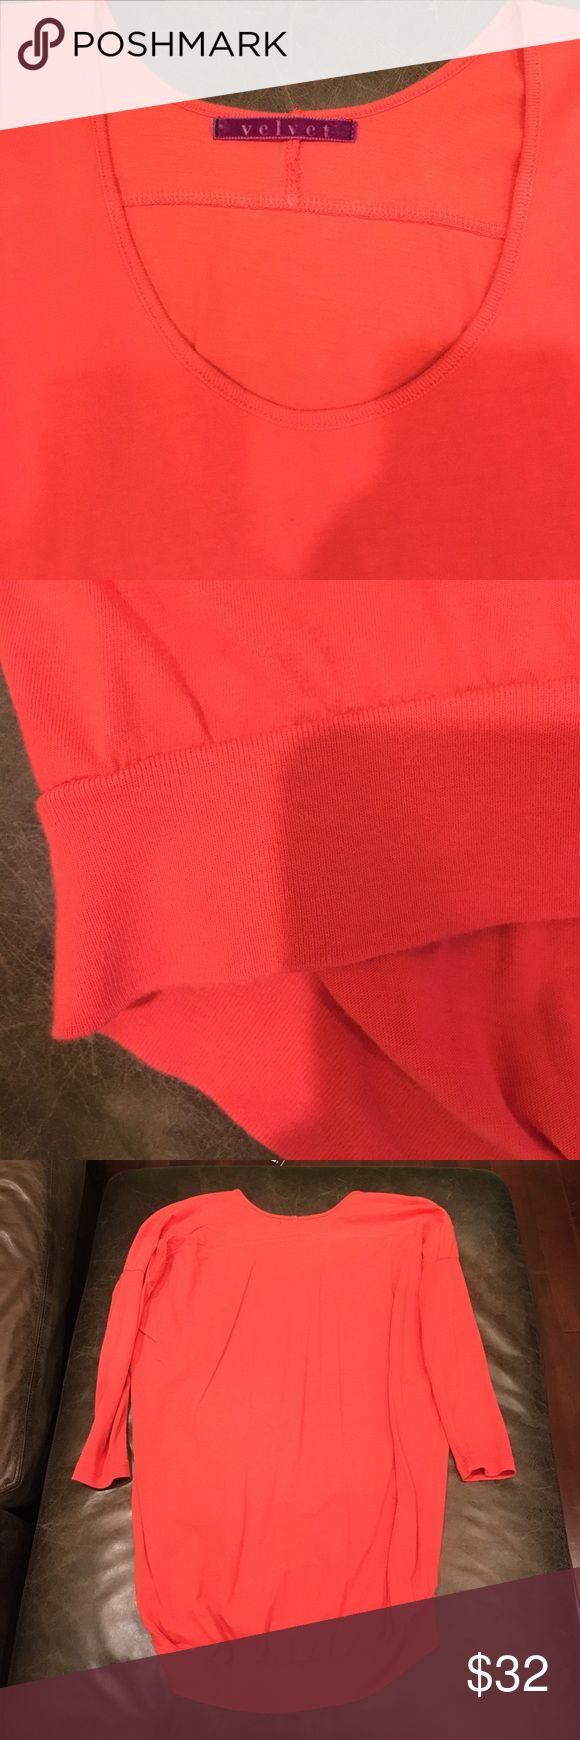 Velvet by graham & spencer 3/4 sleeve shirt Great condition. Banded bottom. Longer in the back. Bright salmon color. Size tag says petite but fits like XS/S. Loose slouchy fit. Velvet Tops